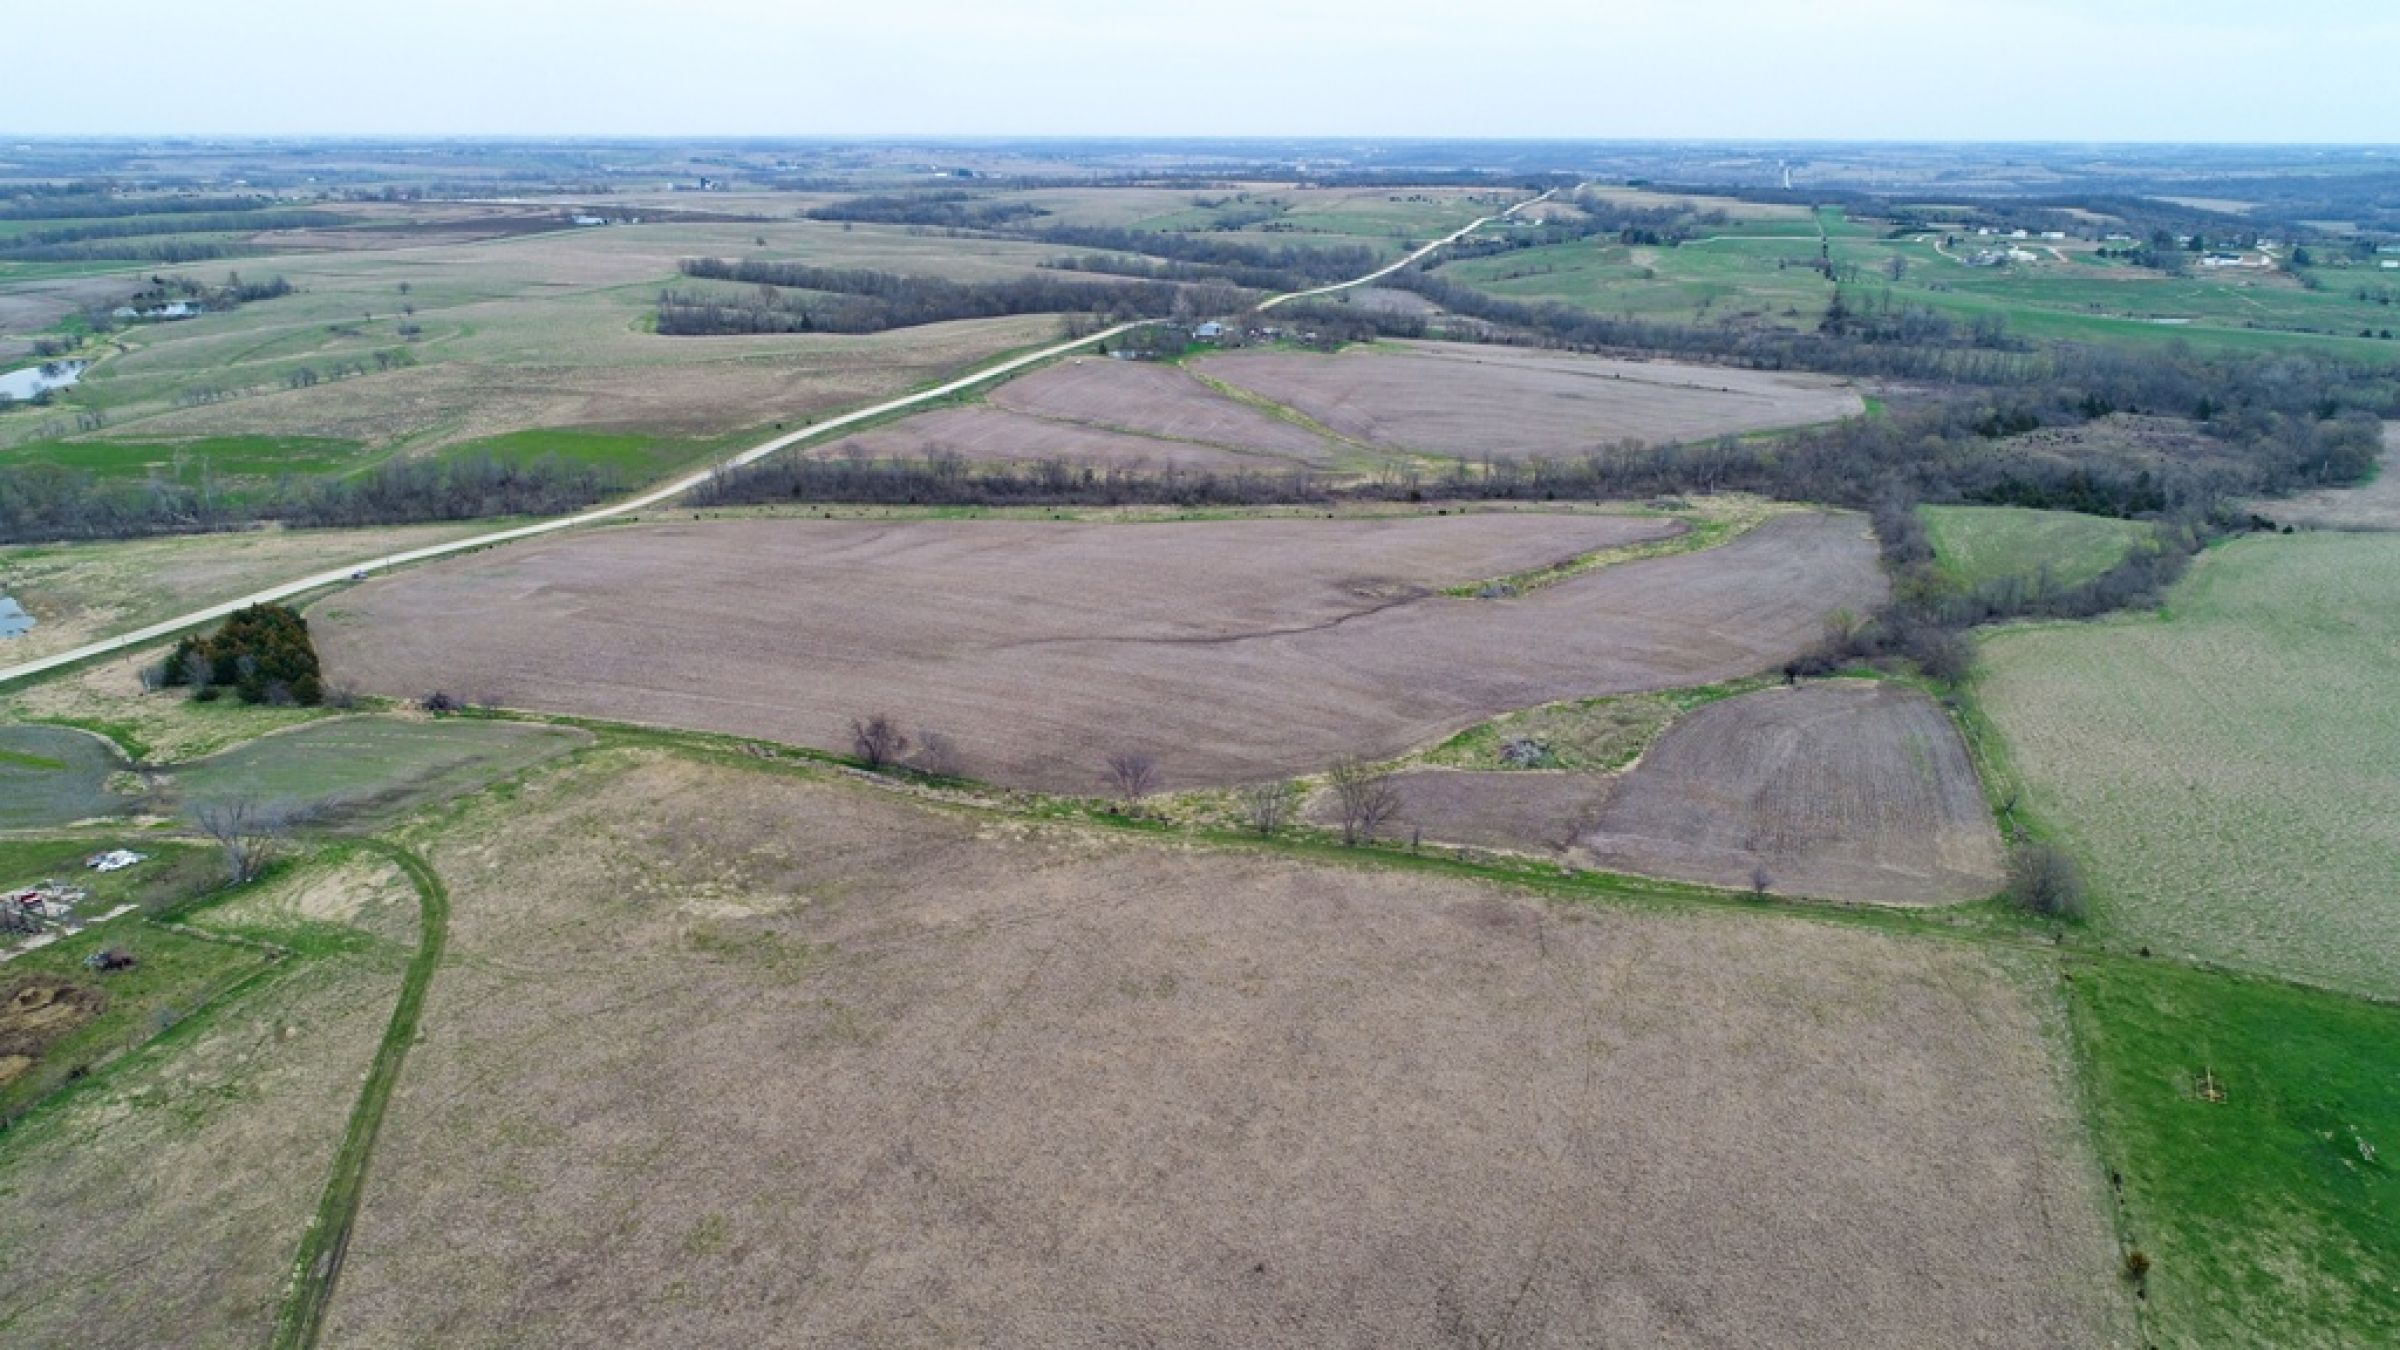 Peoples Company Land For Sale - 77 acres - Warren County, Iowa -14486-21420-tyler-st-lacona-IA